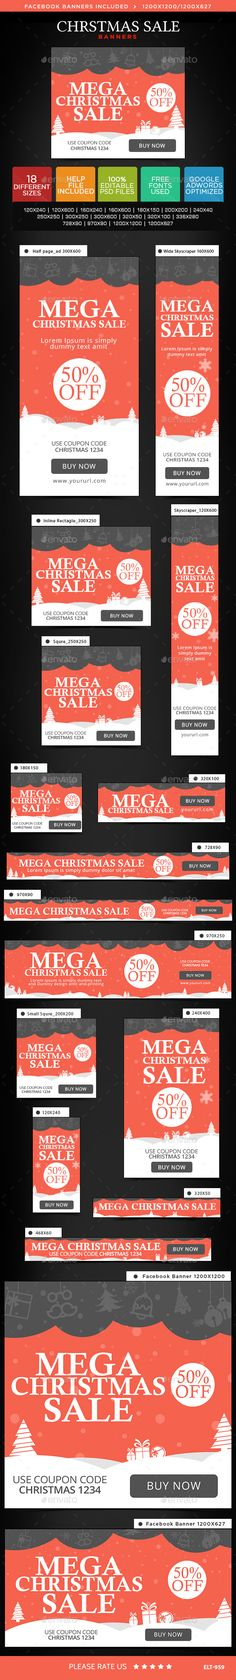 Christmas Sale Web Banners Template PSD #design #ads #xmas Download: http://graphicriver.net/item/christmas-sale-banners/14038572?ref=ksioks